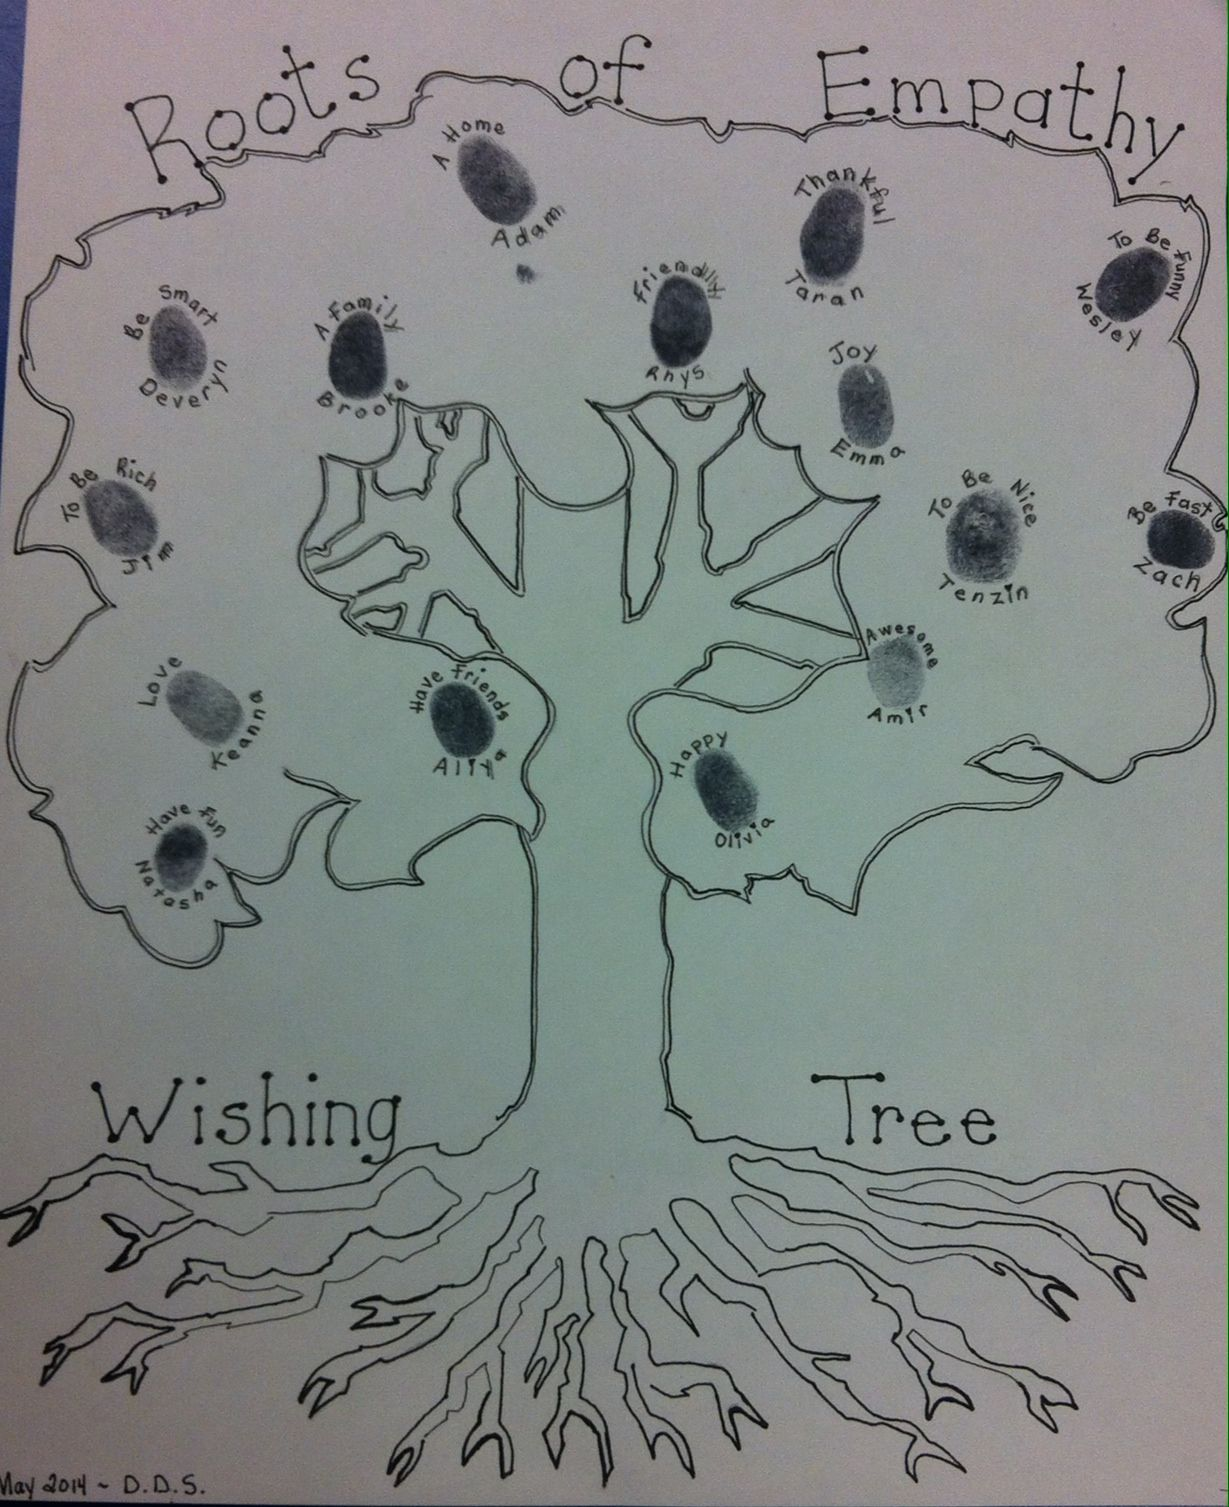 Roots Of Empathy Program Year End Wishing Tree Design With